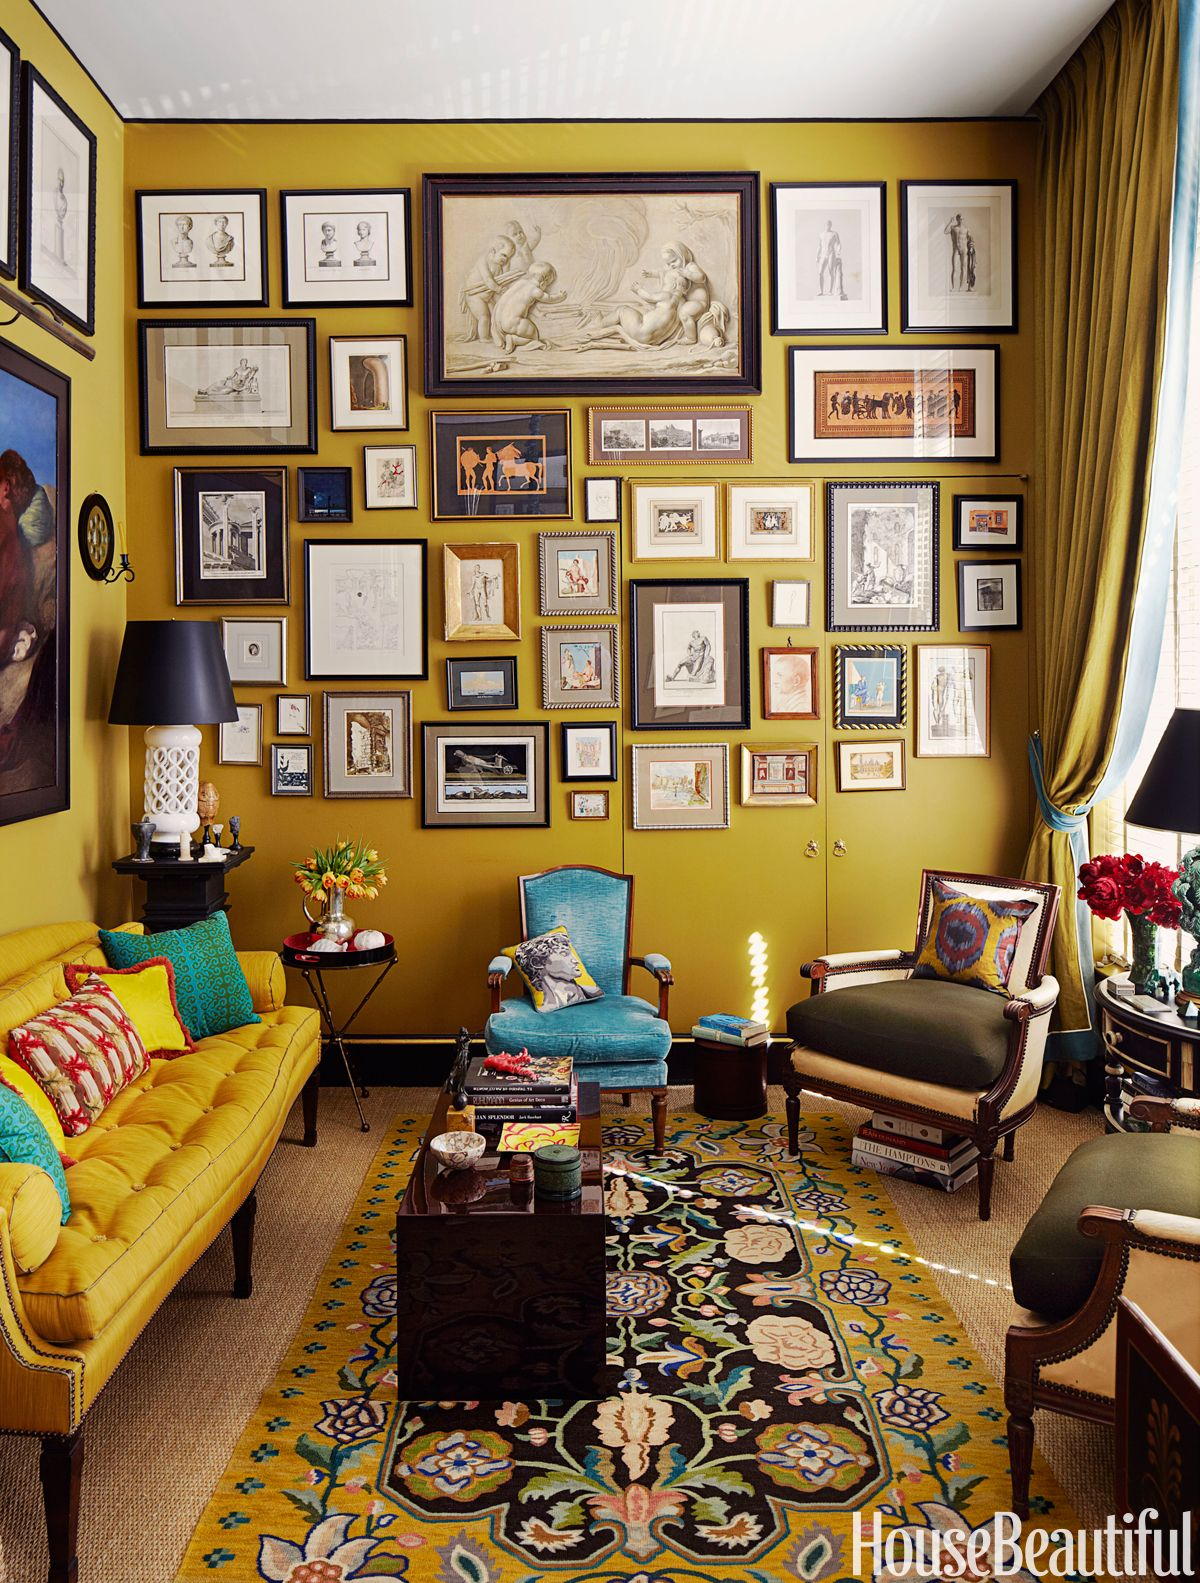 14 Small Living Room Decorating Ideas   How To Arrange A Small Living Room